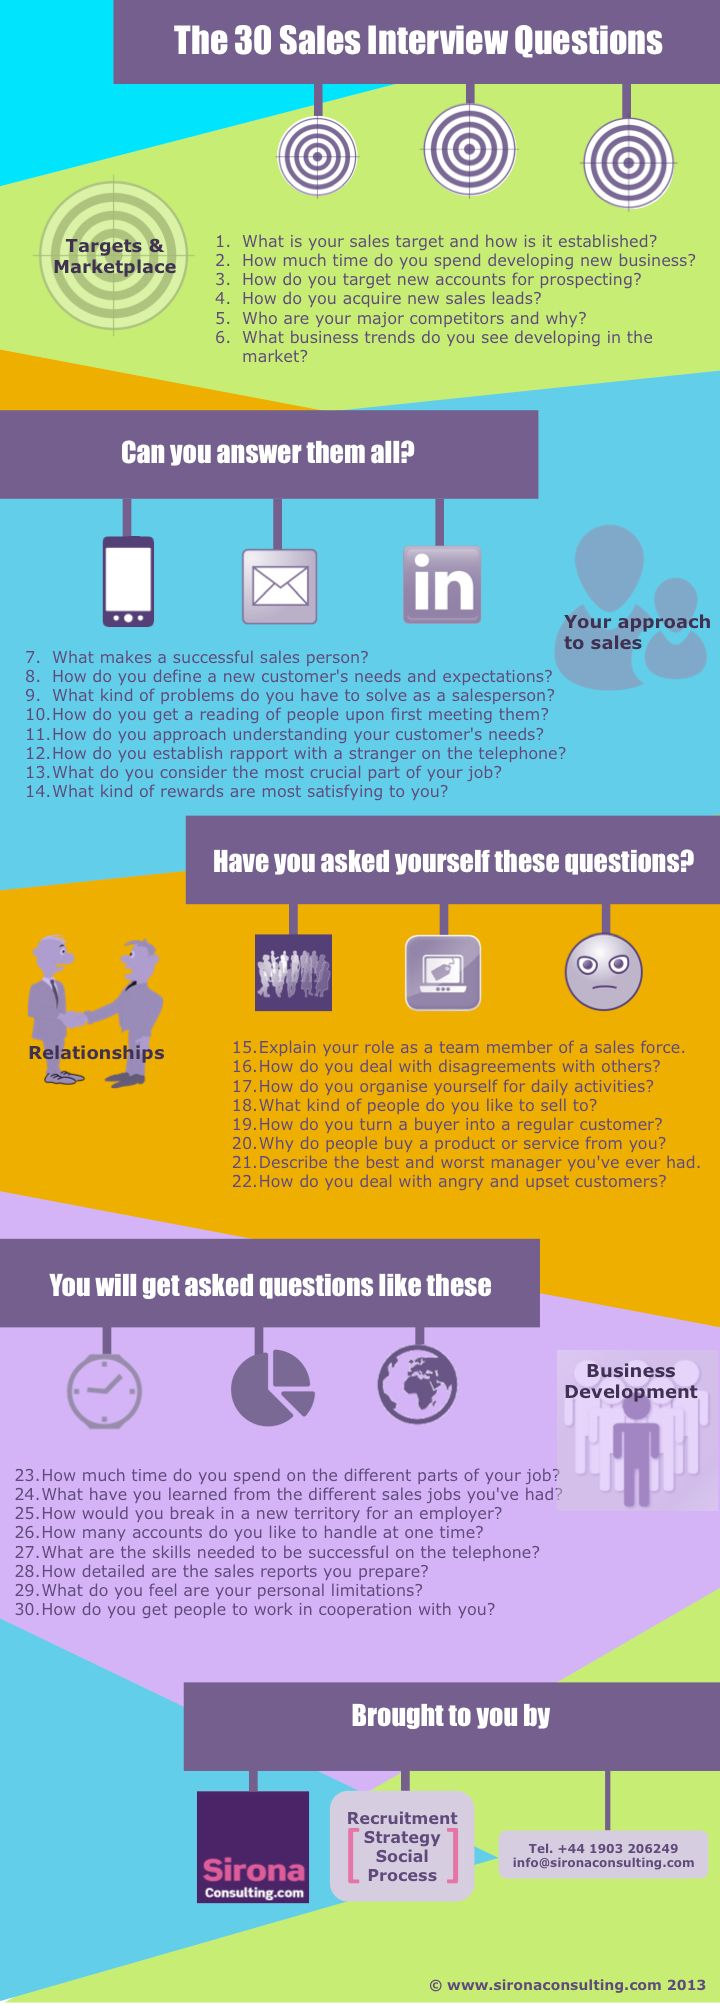 The 30 Sales Interview Questions